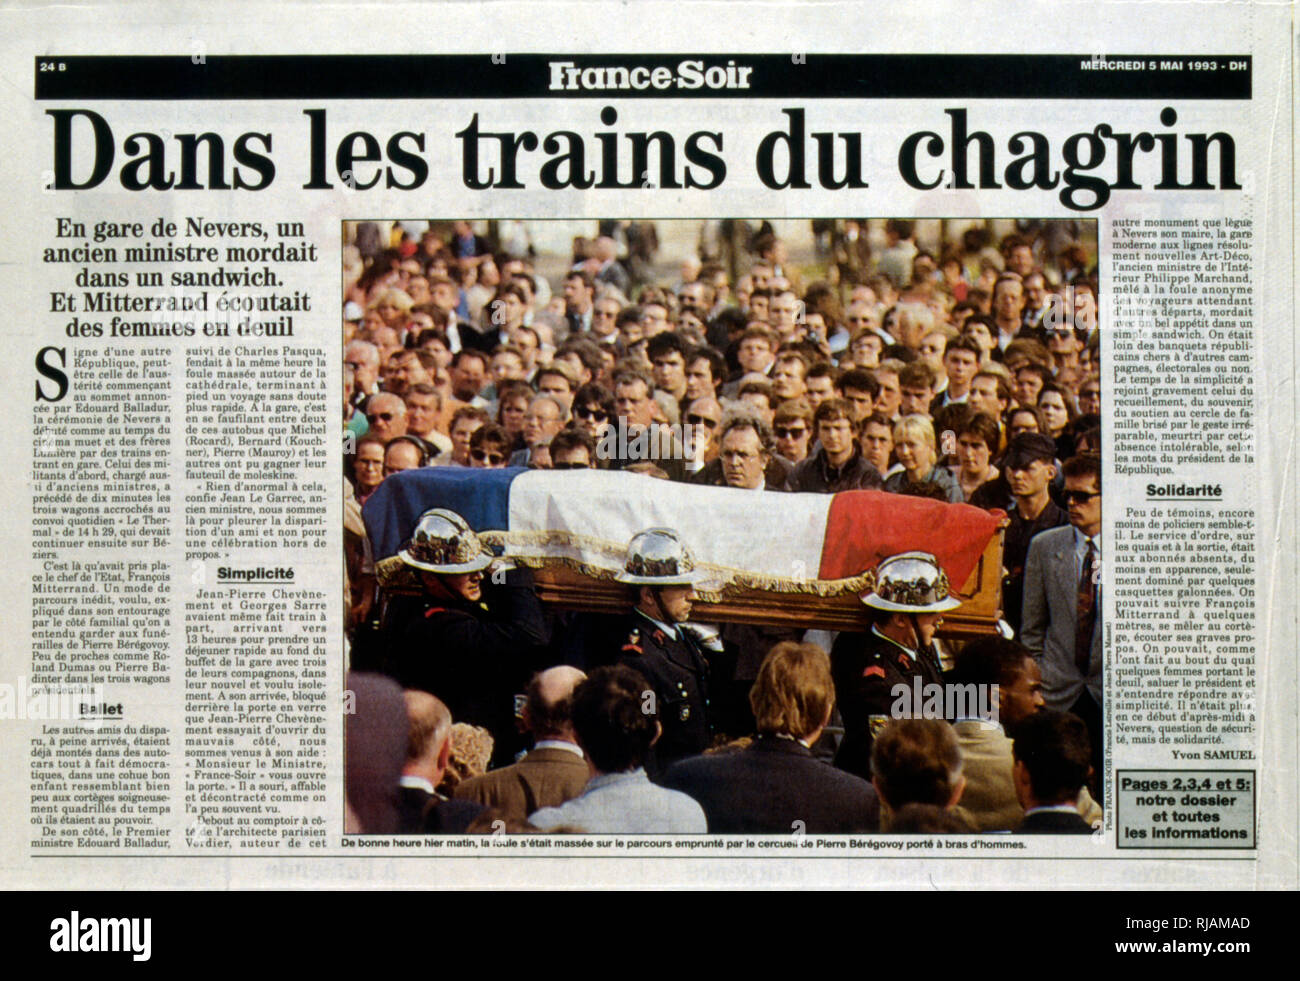 page of the French newspaper 'France-Soir' after the funeral of Pierre Beregovoy, May 1993. Pierre Eugene Beregovoy (1925 - 1 May 1993) was a French politician who served as Prime Minister of France under President Francois Mitterrand from 2 April 1992 to 29 March 1993. He committed suicide. - Stock Image